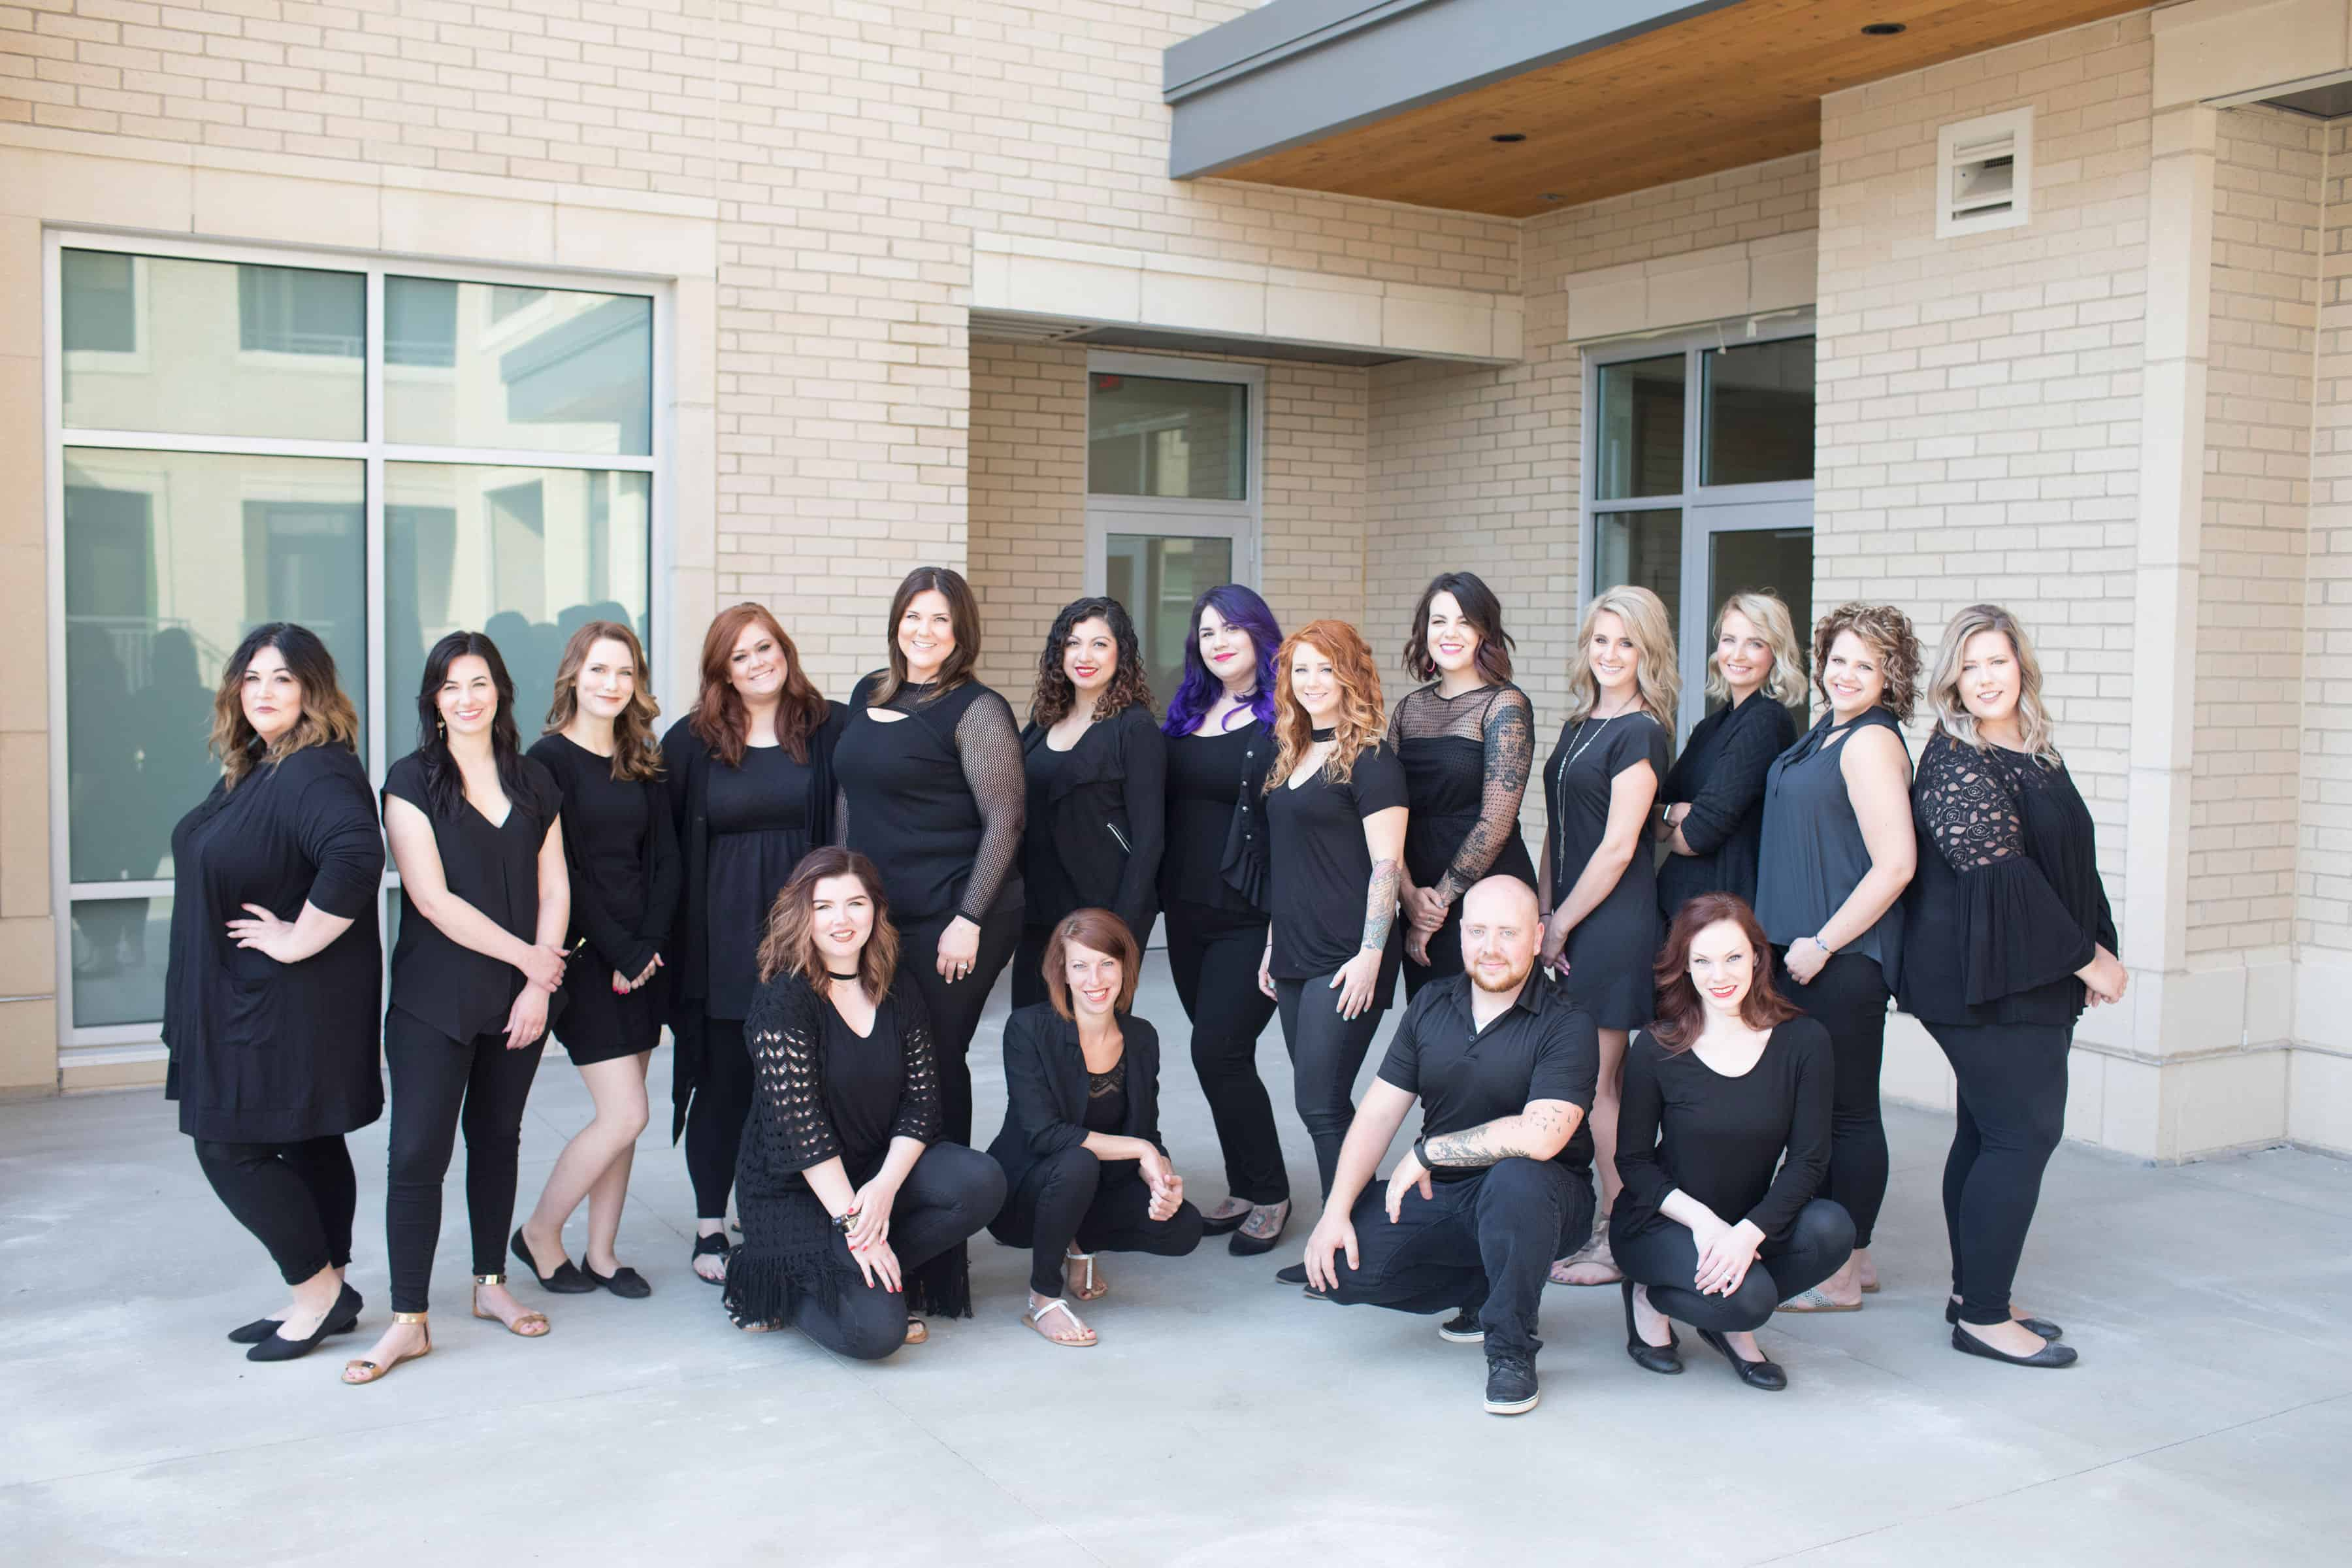 Meet Your Stylist Blog All About Events A Staff That Plays Together Stays Together Kati Whitledge Samantha Georgson